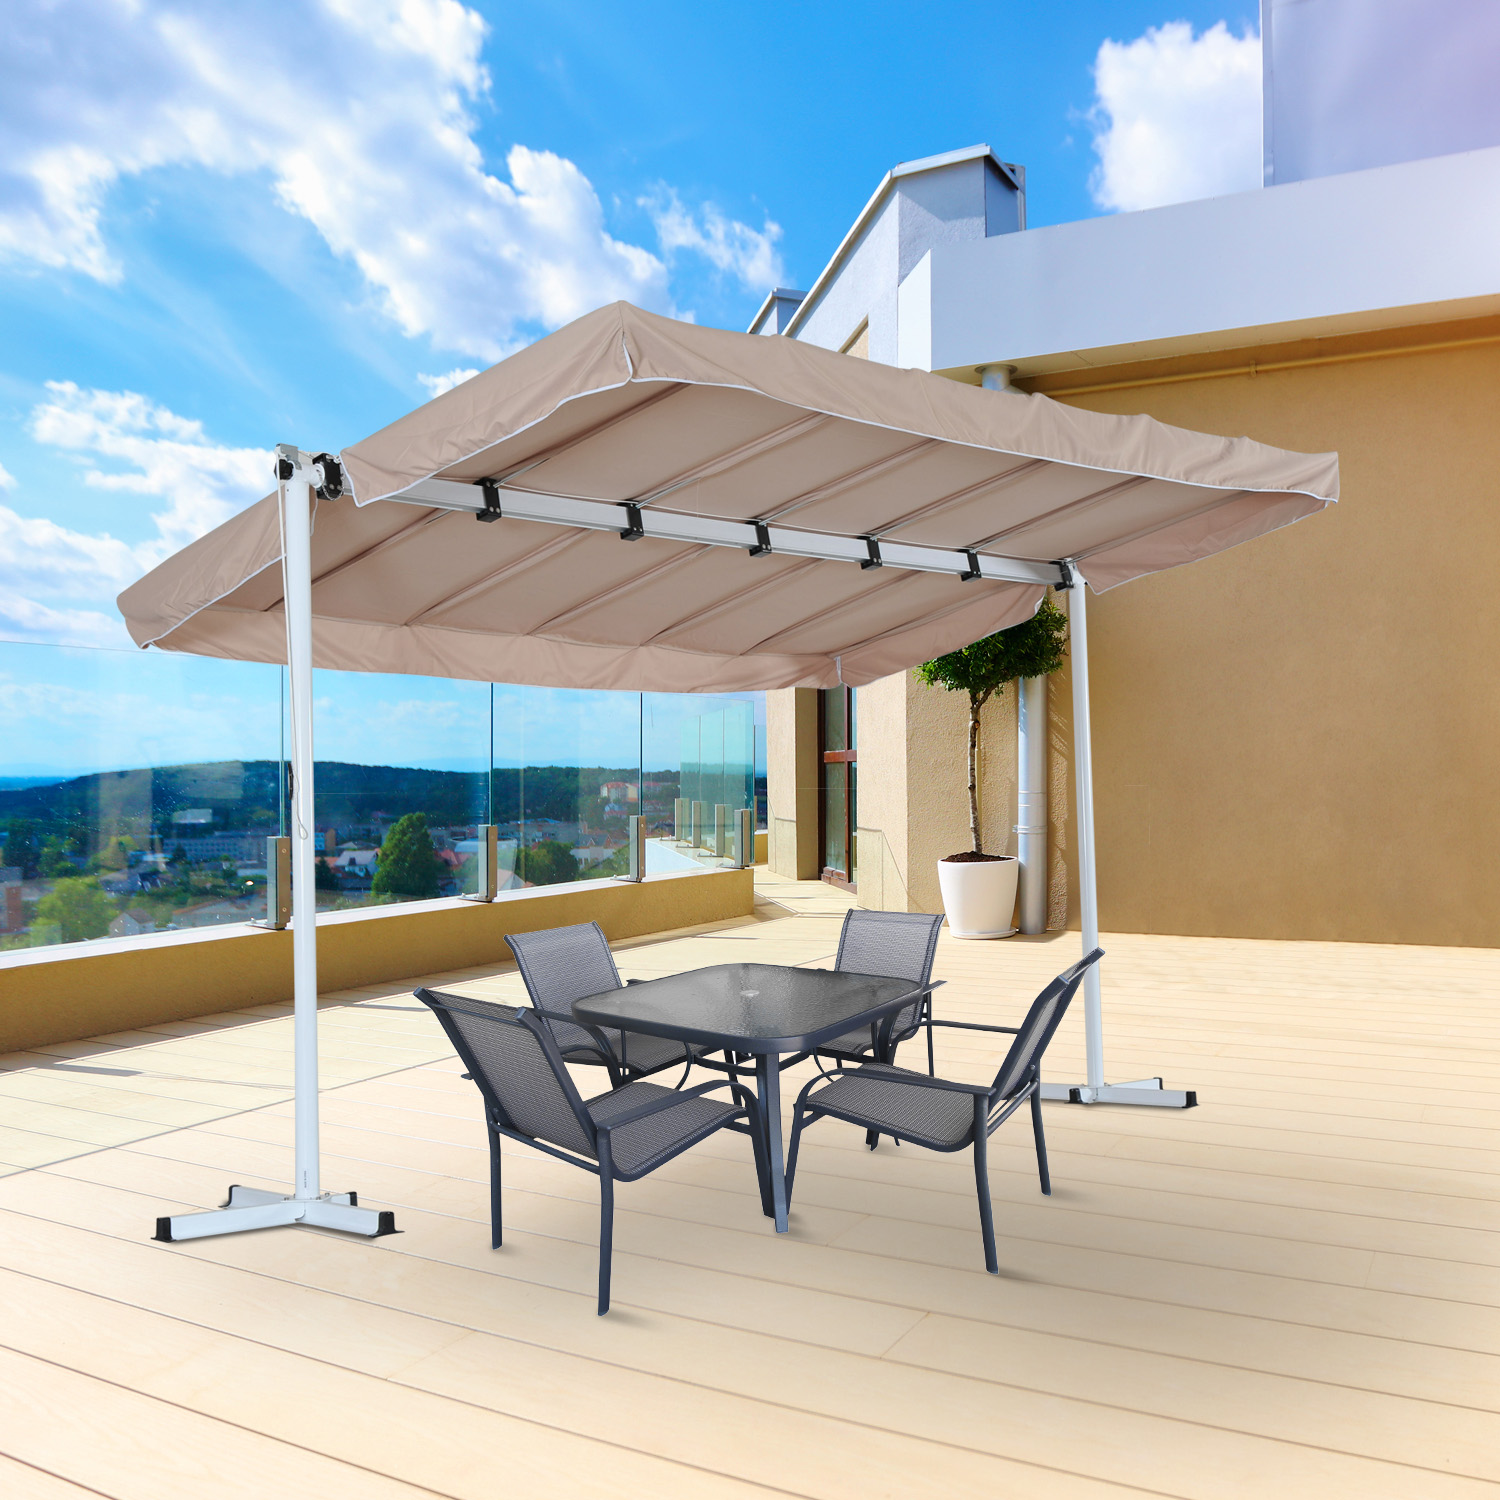 Image of CAD $379.99 Outsunny 12'x8' Free Standing Manual Retractable Awning Outdoor Gazebo Garden Sunshade Beige / 12x8ft Sun Shelter Patio Backard Canada 25093582653